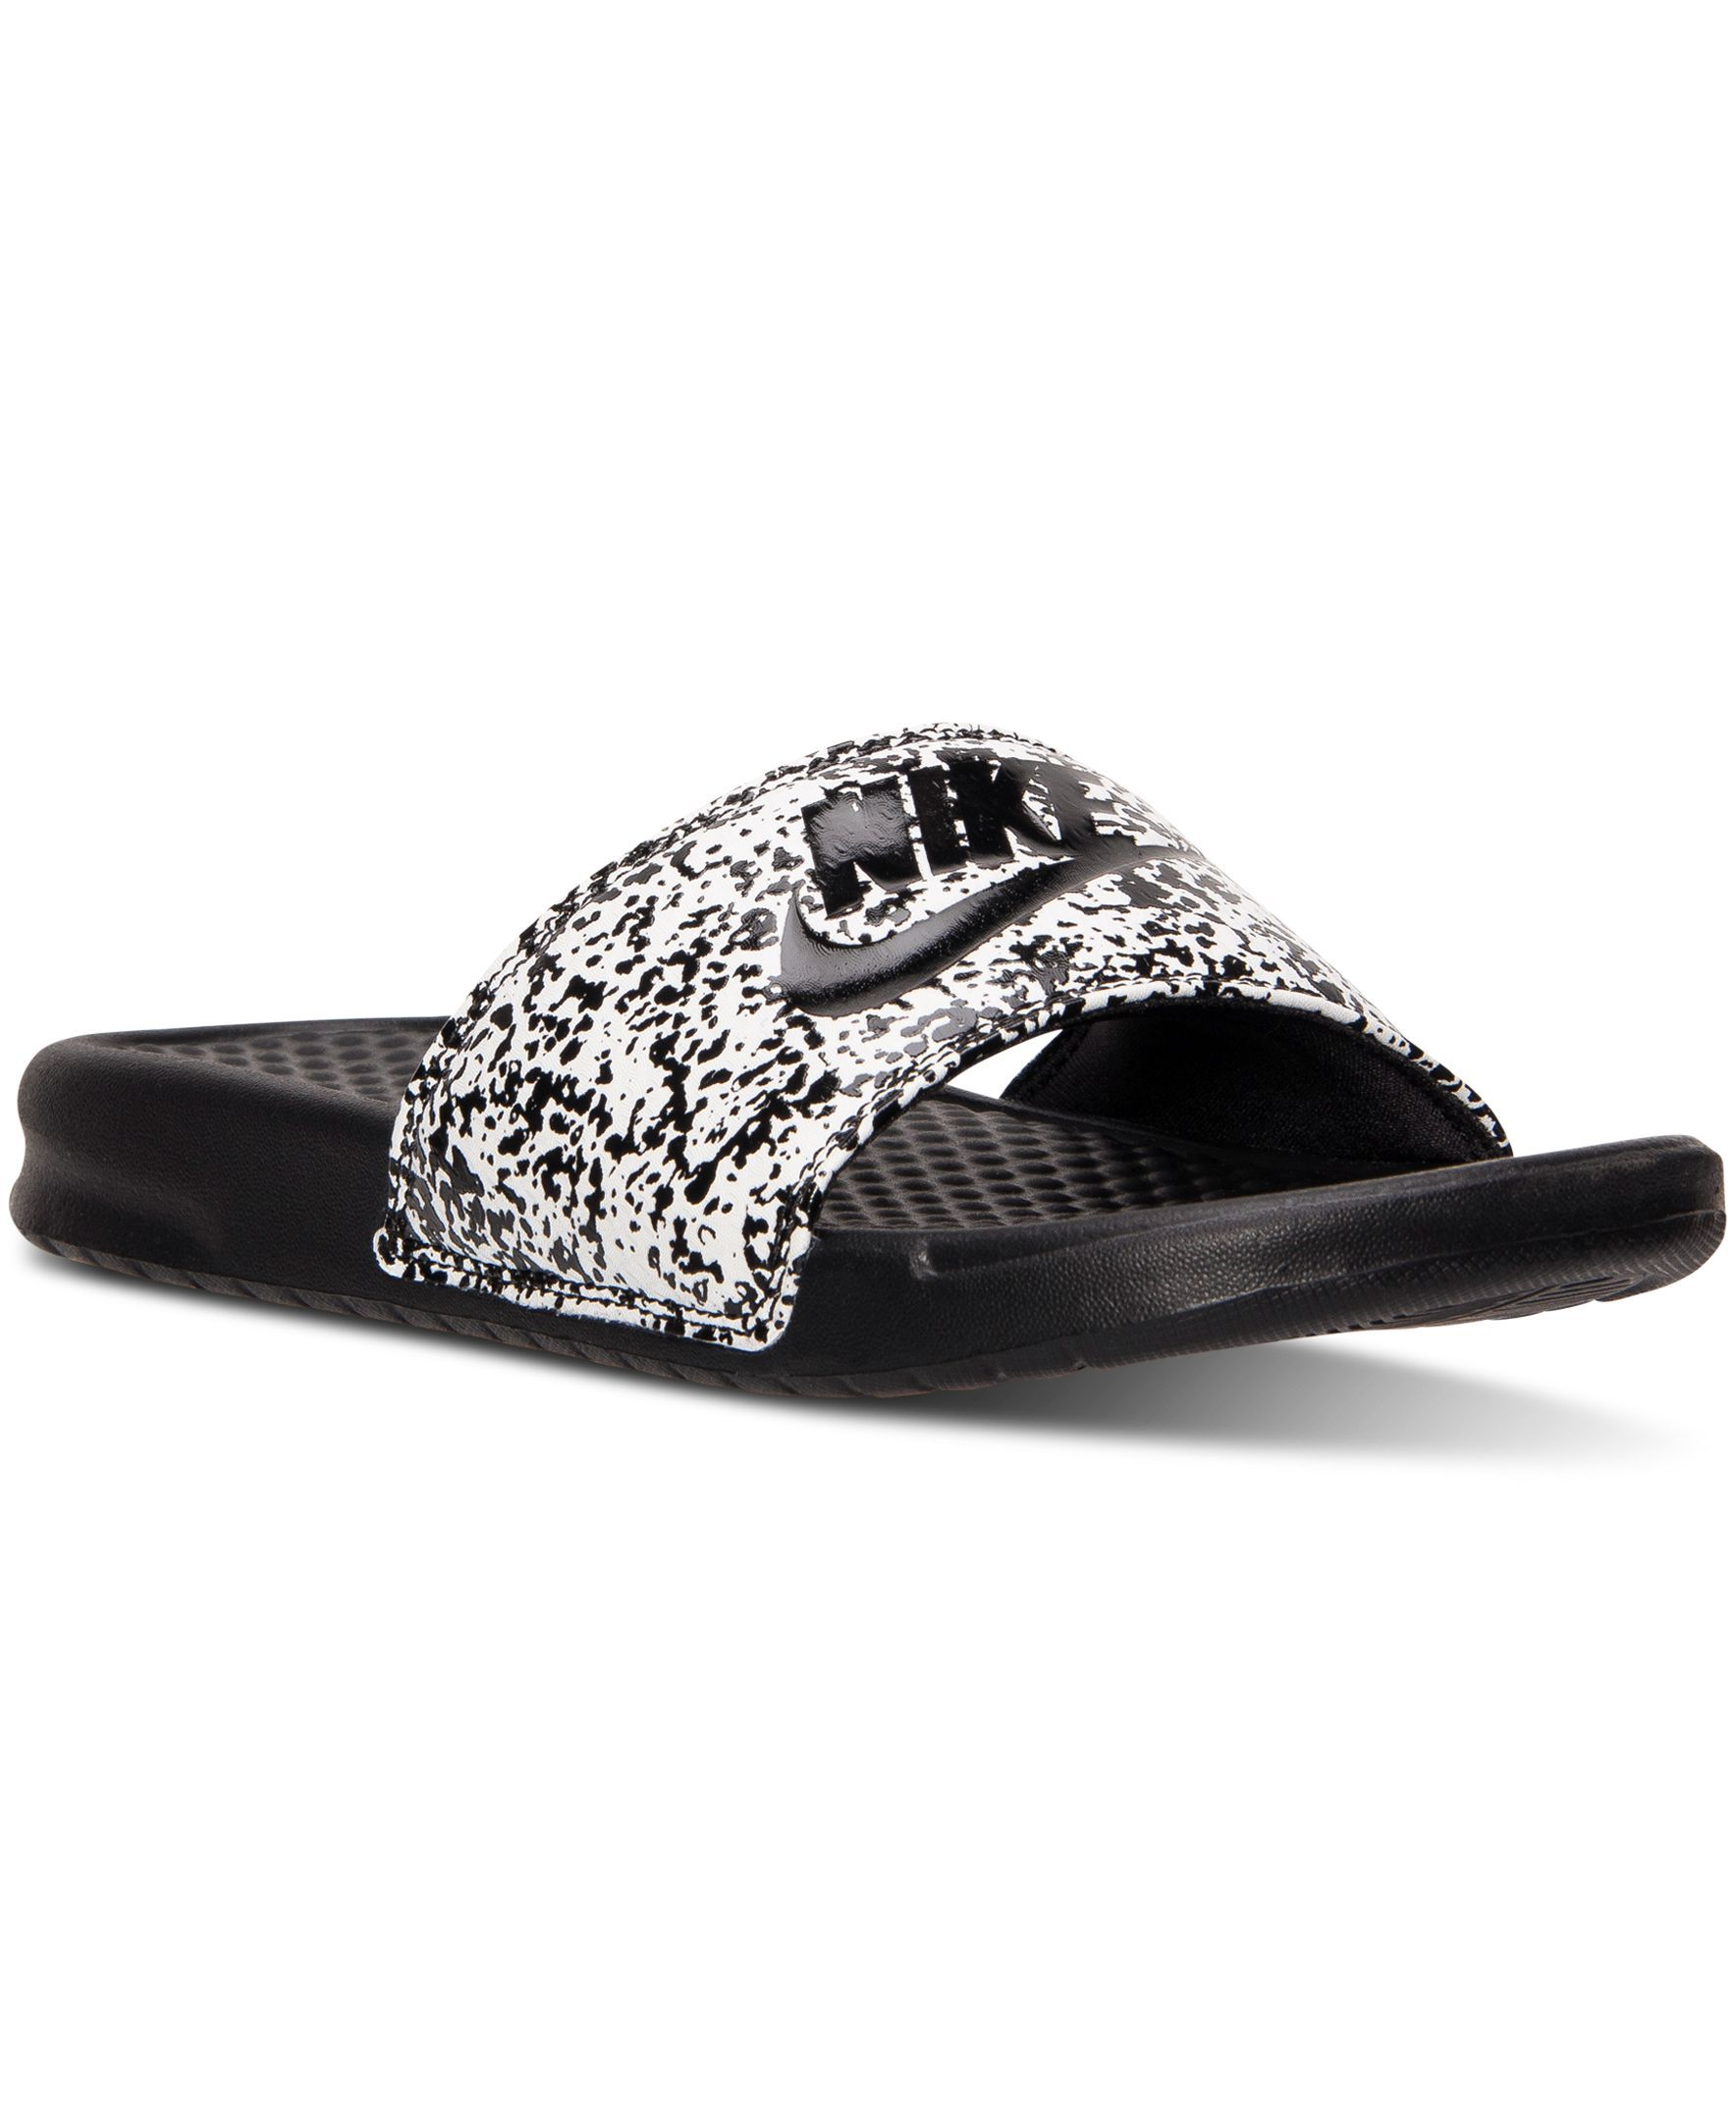 77968a86e250 Nike Men s Benassi Jdi Print Slide Sandals from Finish Line